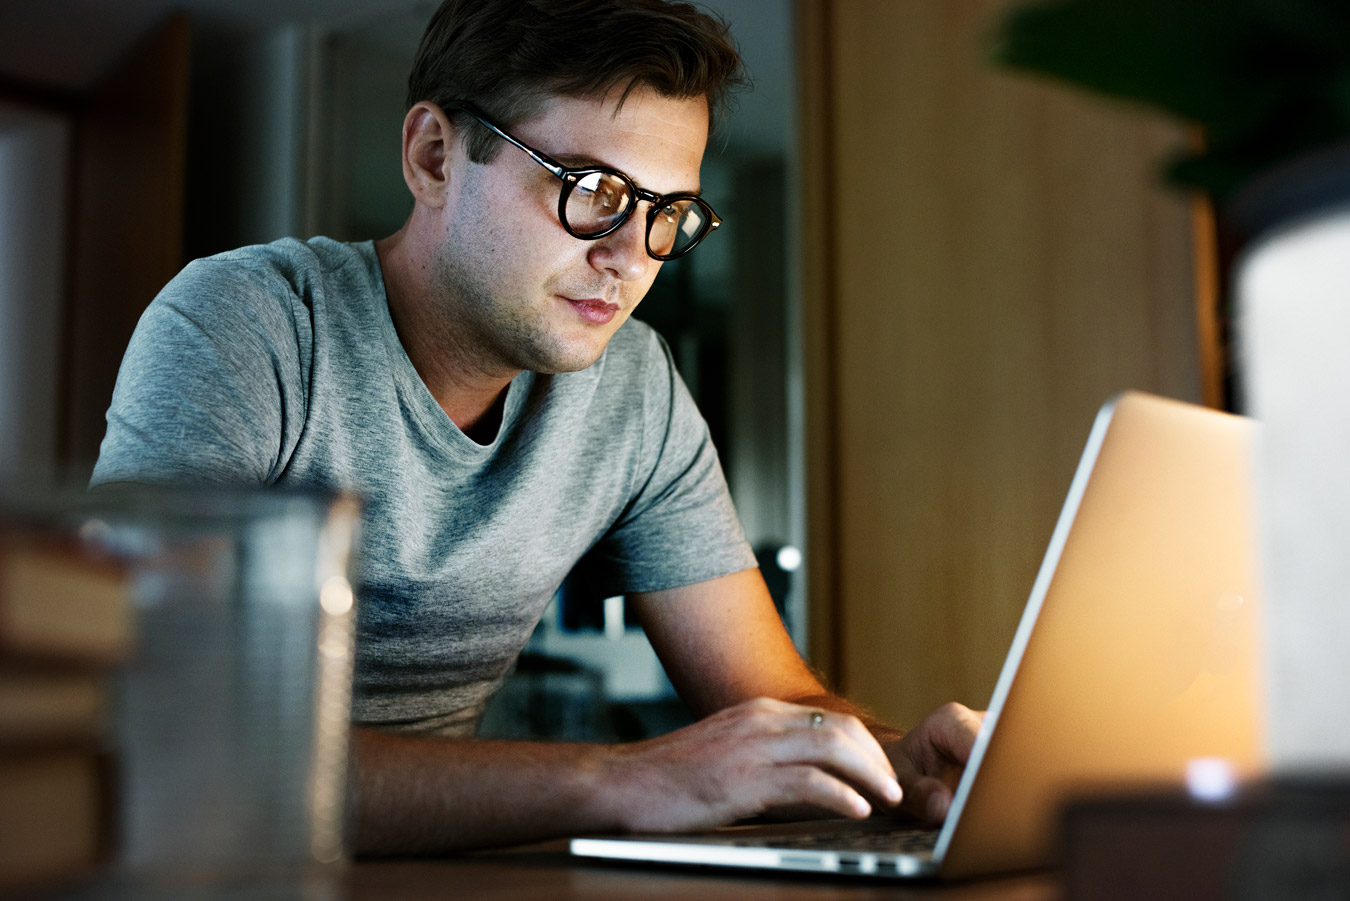 man with glasses working in front of a laptop eye strain